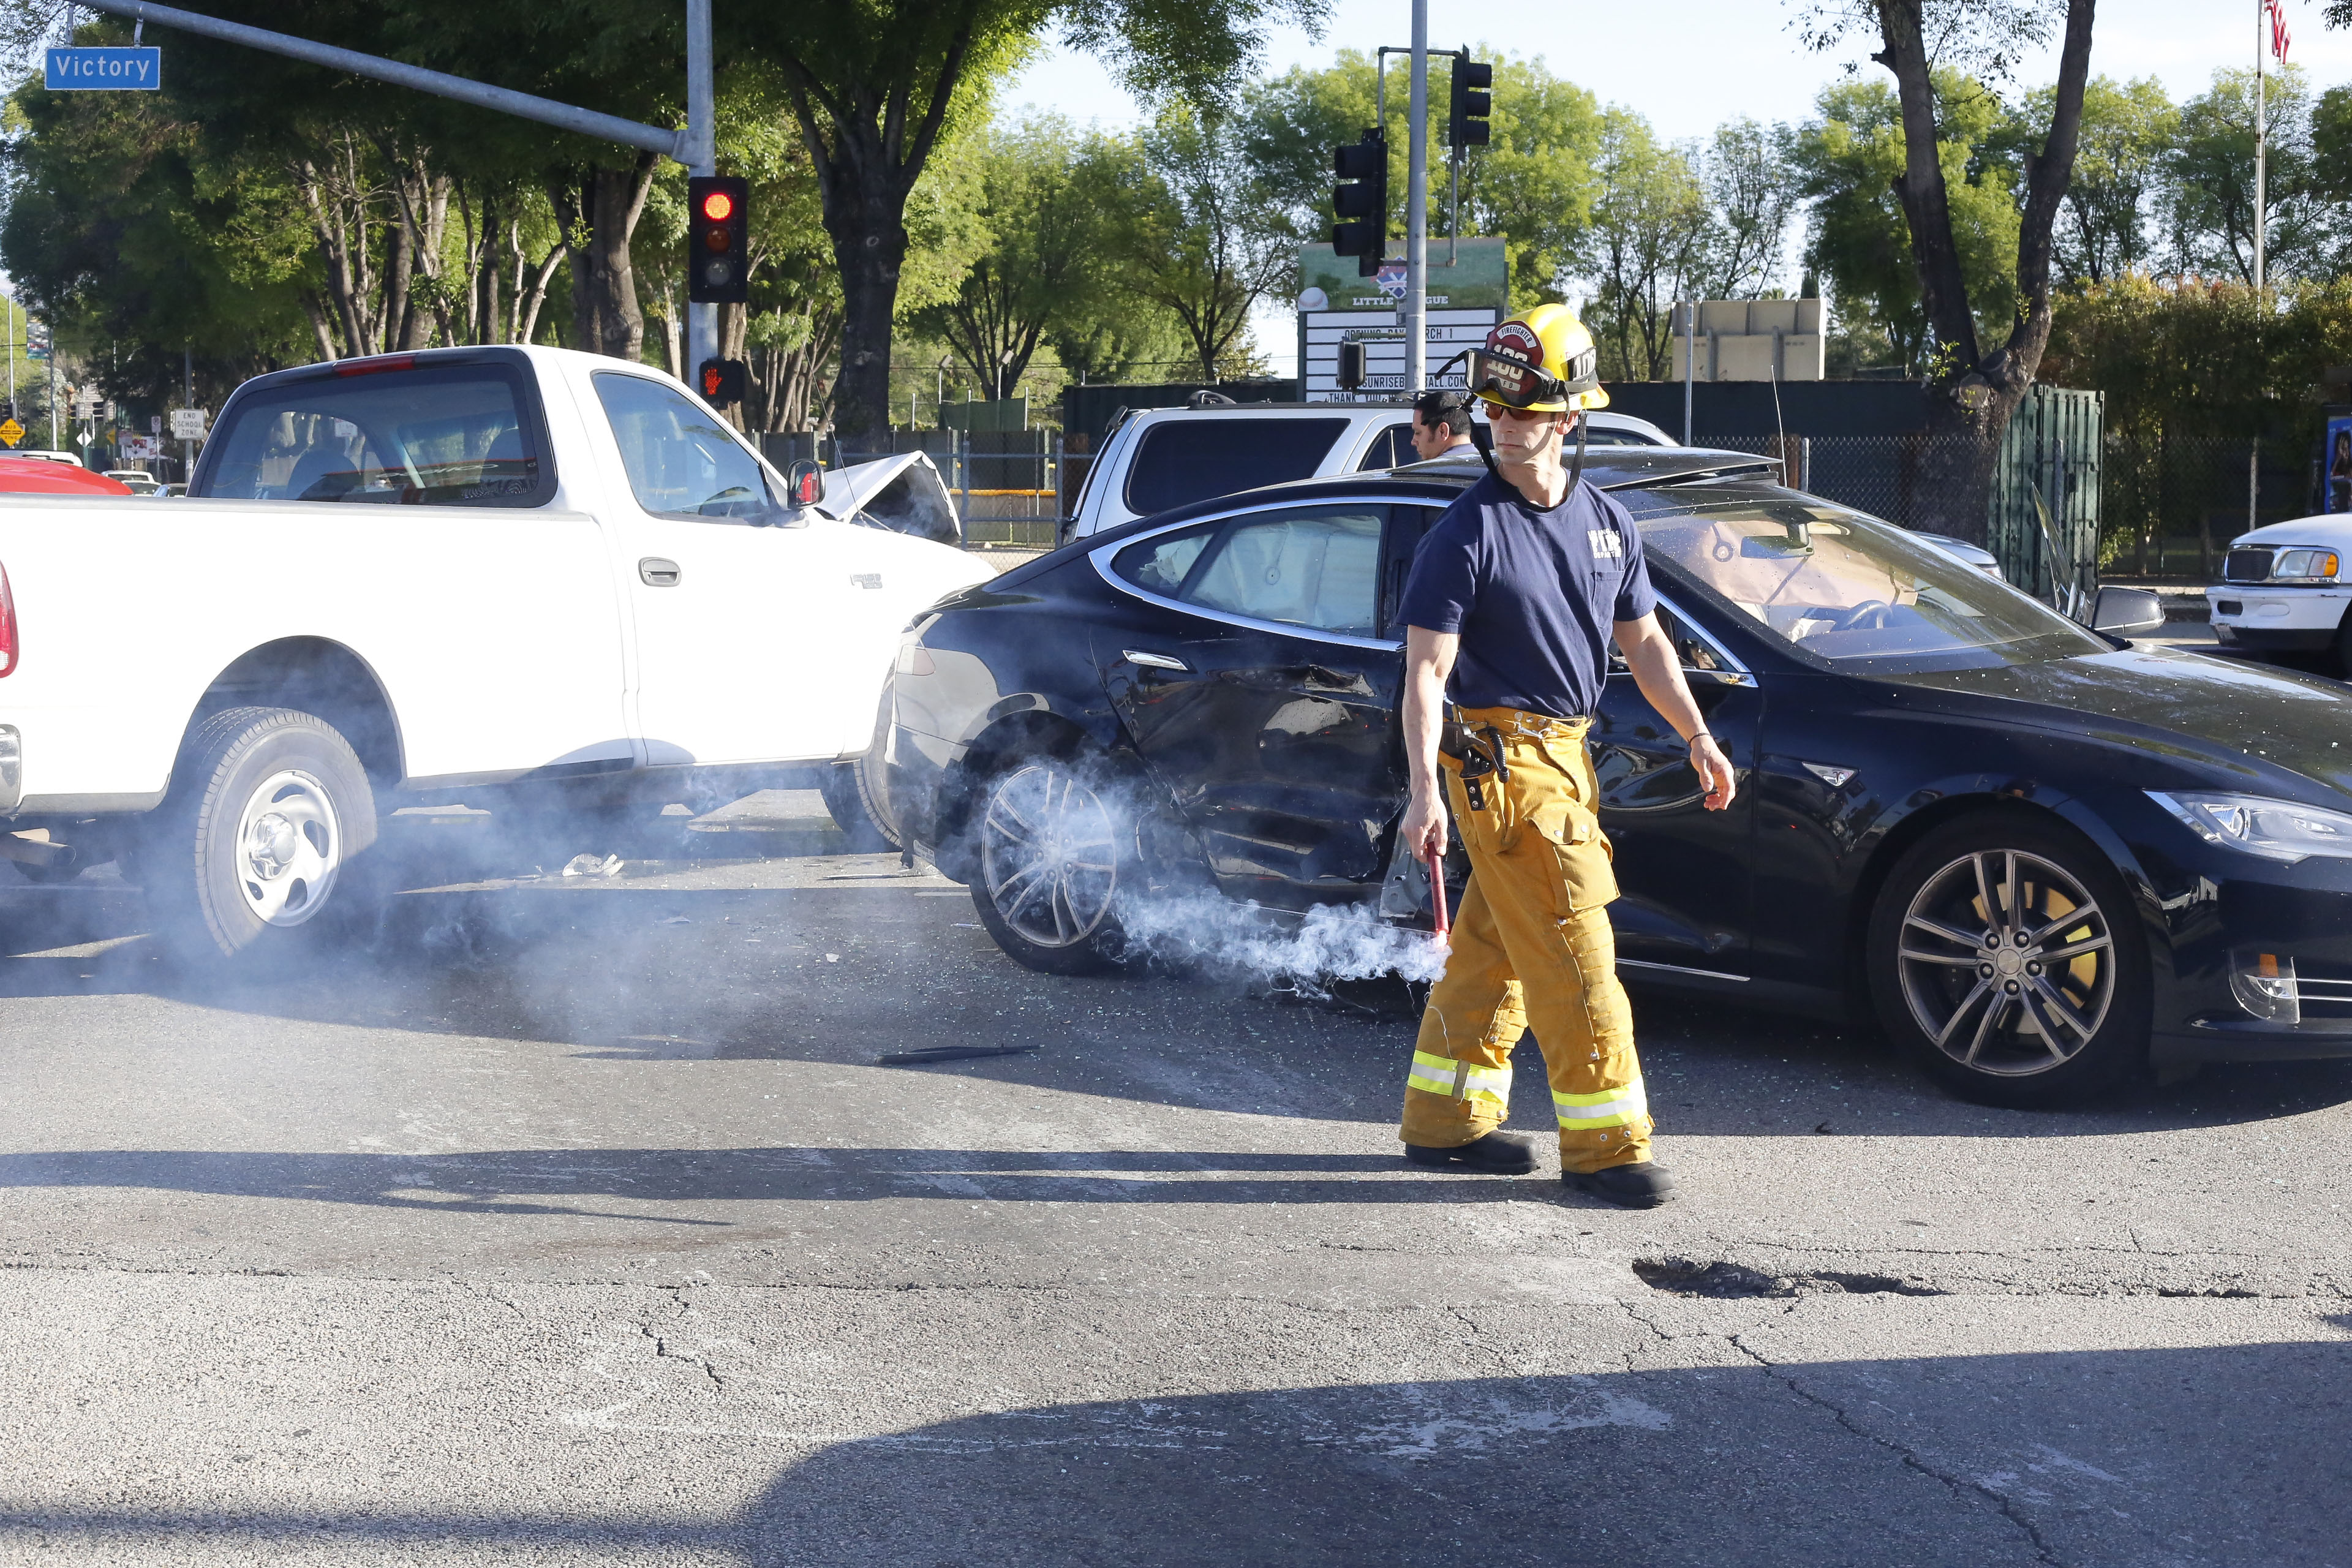 Seven car accident at Pierce College intersection